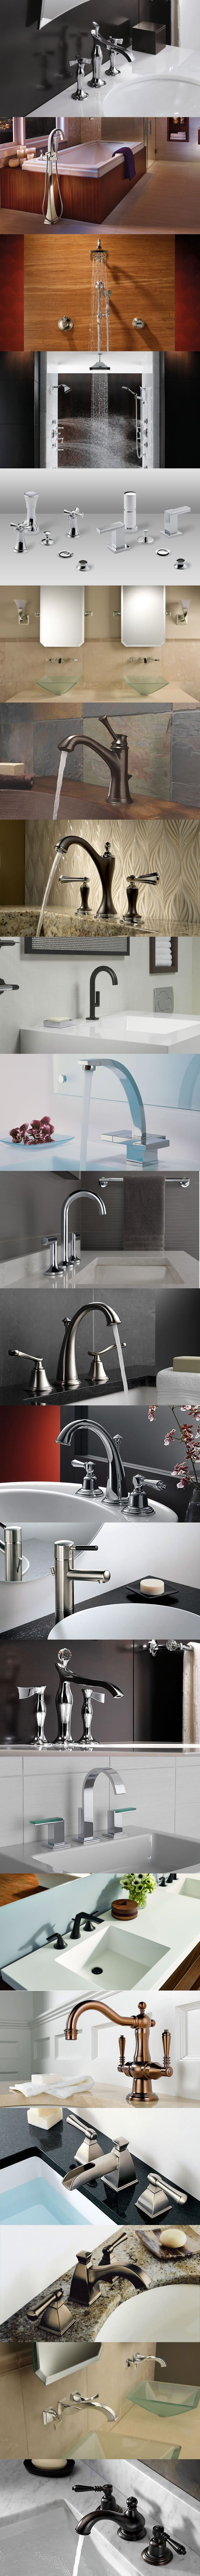 glam pullout great kitchen create spray unique photos bathroom a faucets of the com country inspirational stainless lf brilliance farmhouse for ss how htsrec to artesso within faucet brizo